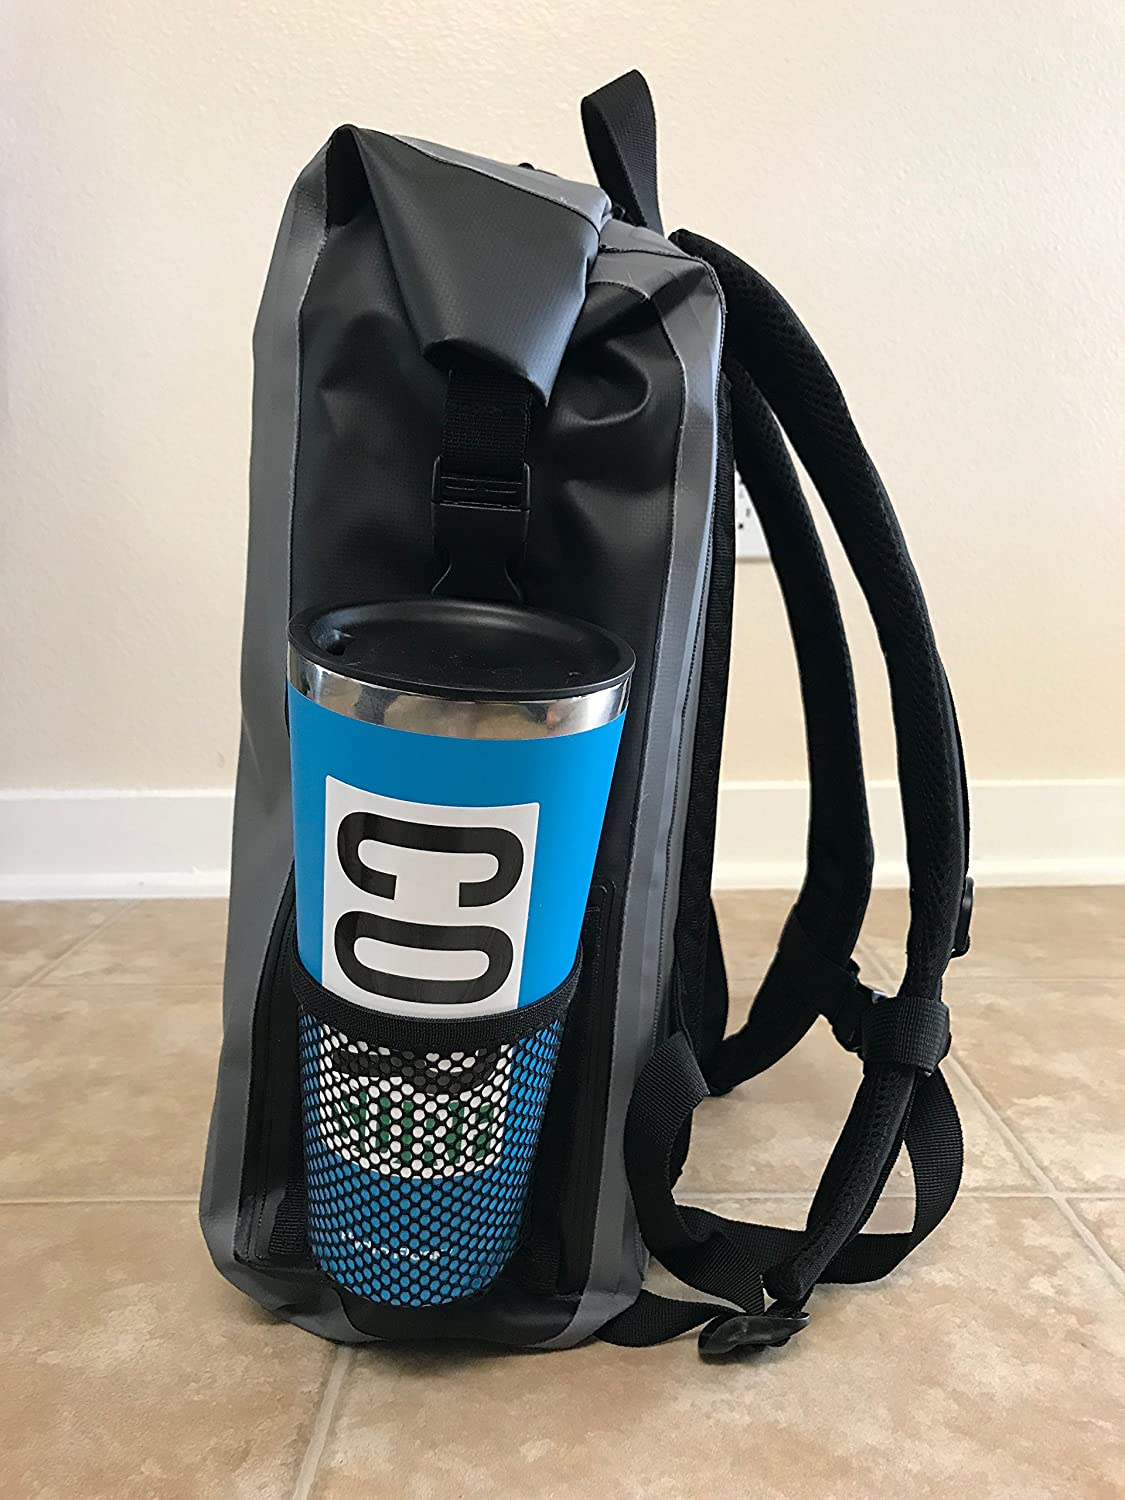 c4358088314a One feature of this backpack that comes in handy is the removable laptop  sleeve that allows you to leave your backpack or laptop bag behind